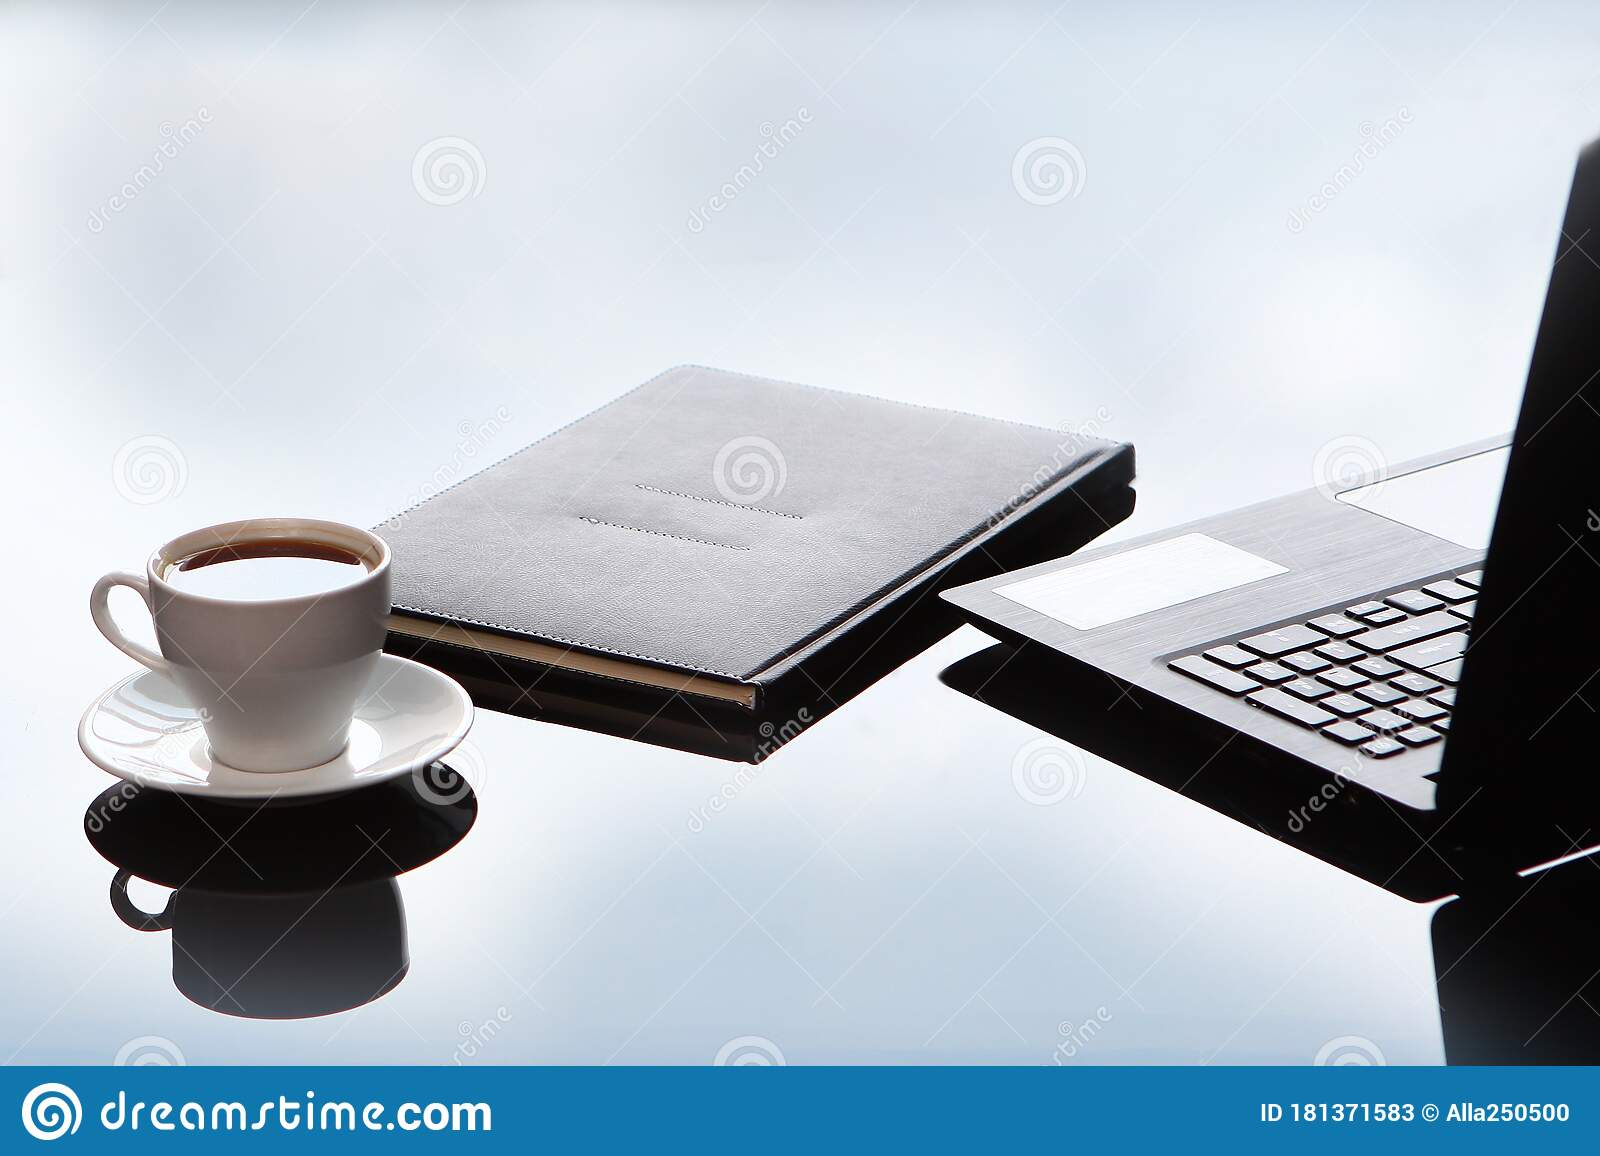 Business Accessories On A Glass Table A Laptop And A Leather Bound Notebook Reflection Of The Sky Copy Of The Space Stock Image Image Of Copy Blank 181371583